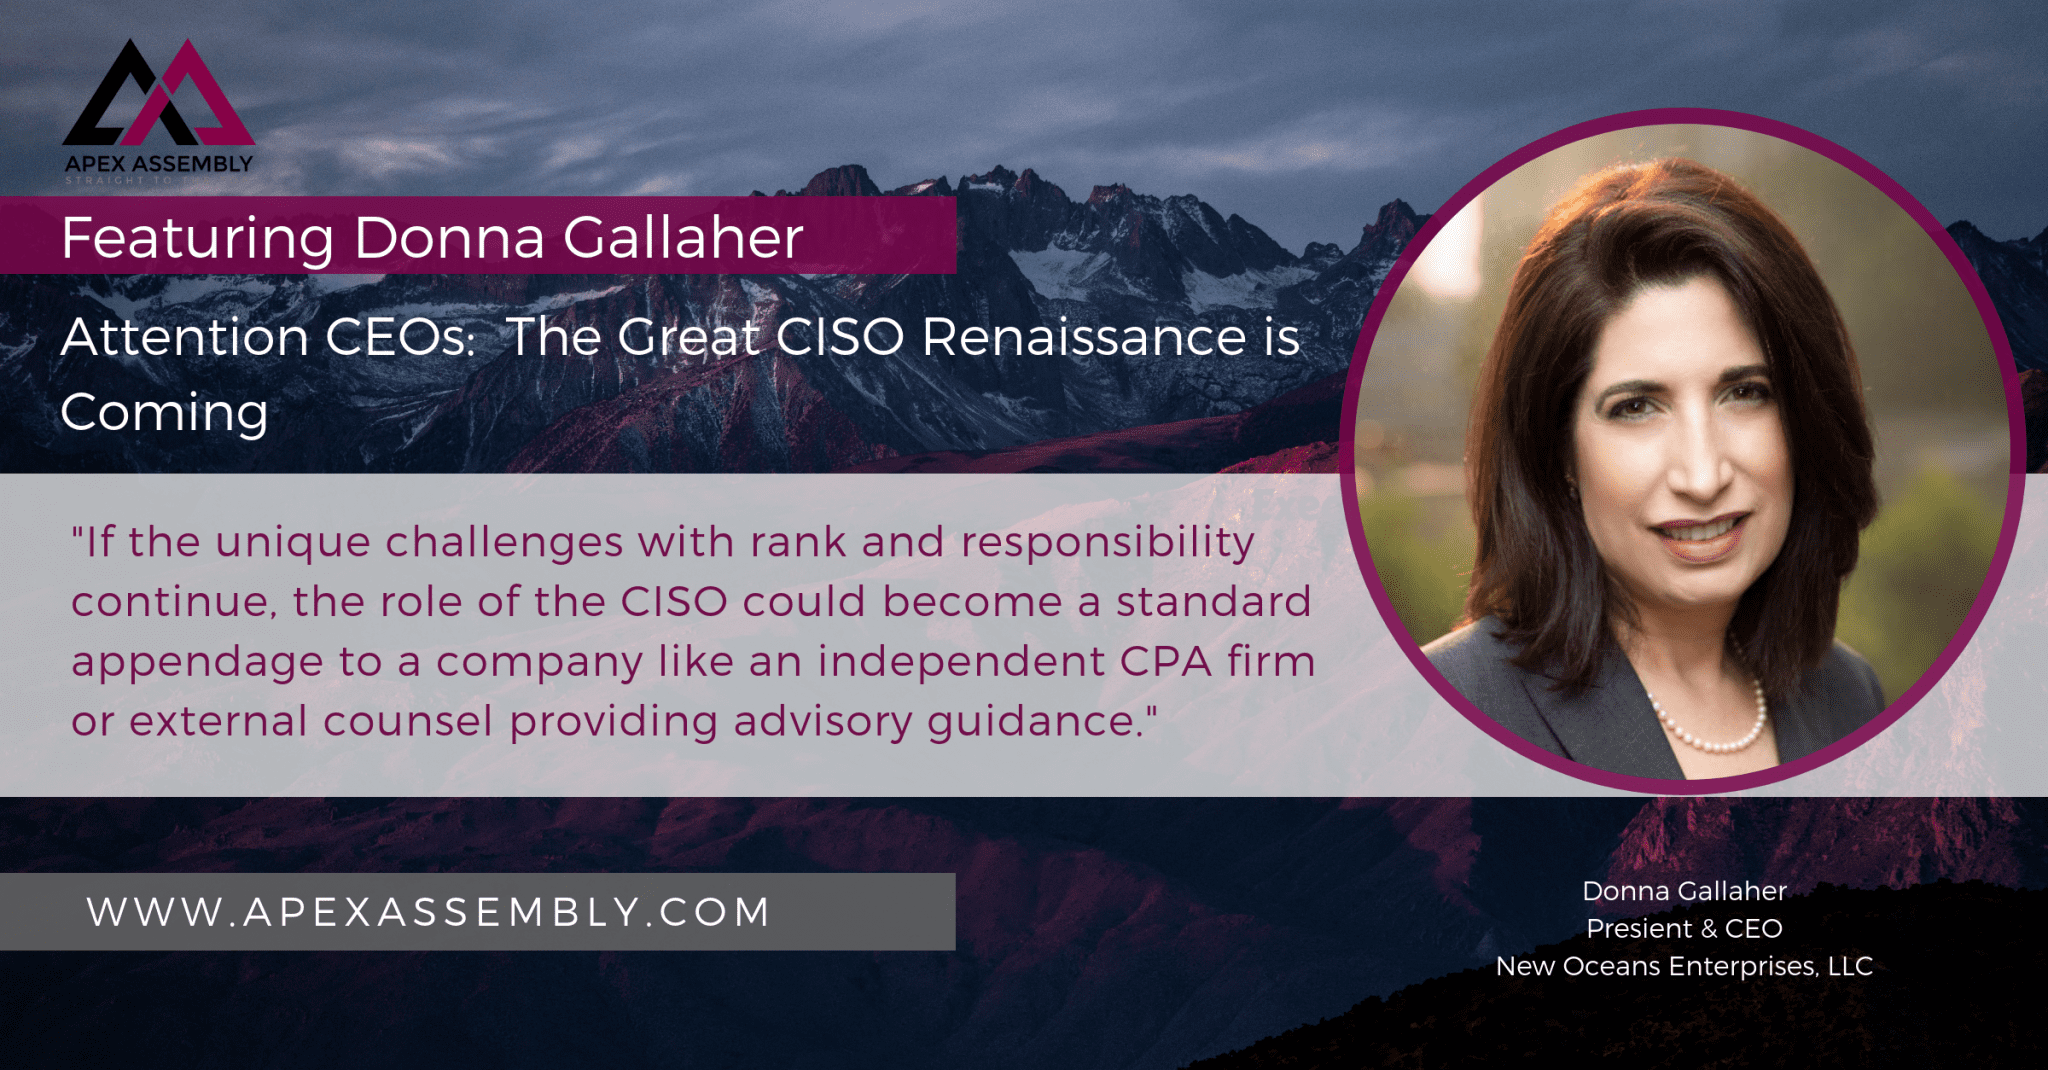 Ciso Resume Attention Ceos The Great Ciso Renaissance Is Coming Apex Assembly